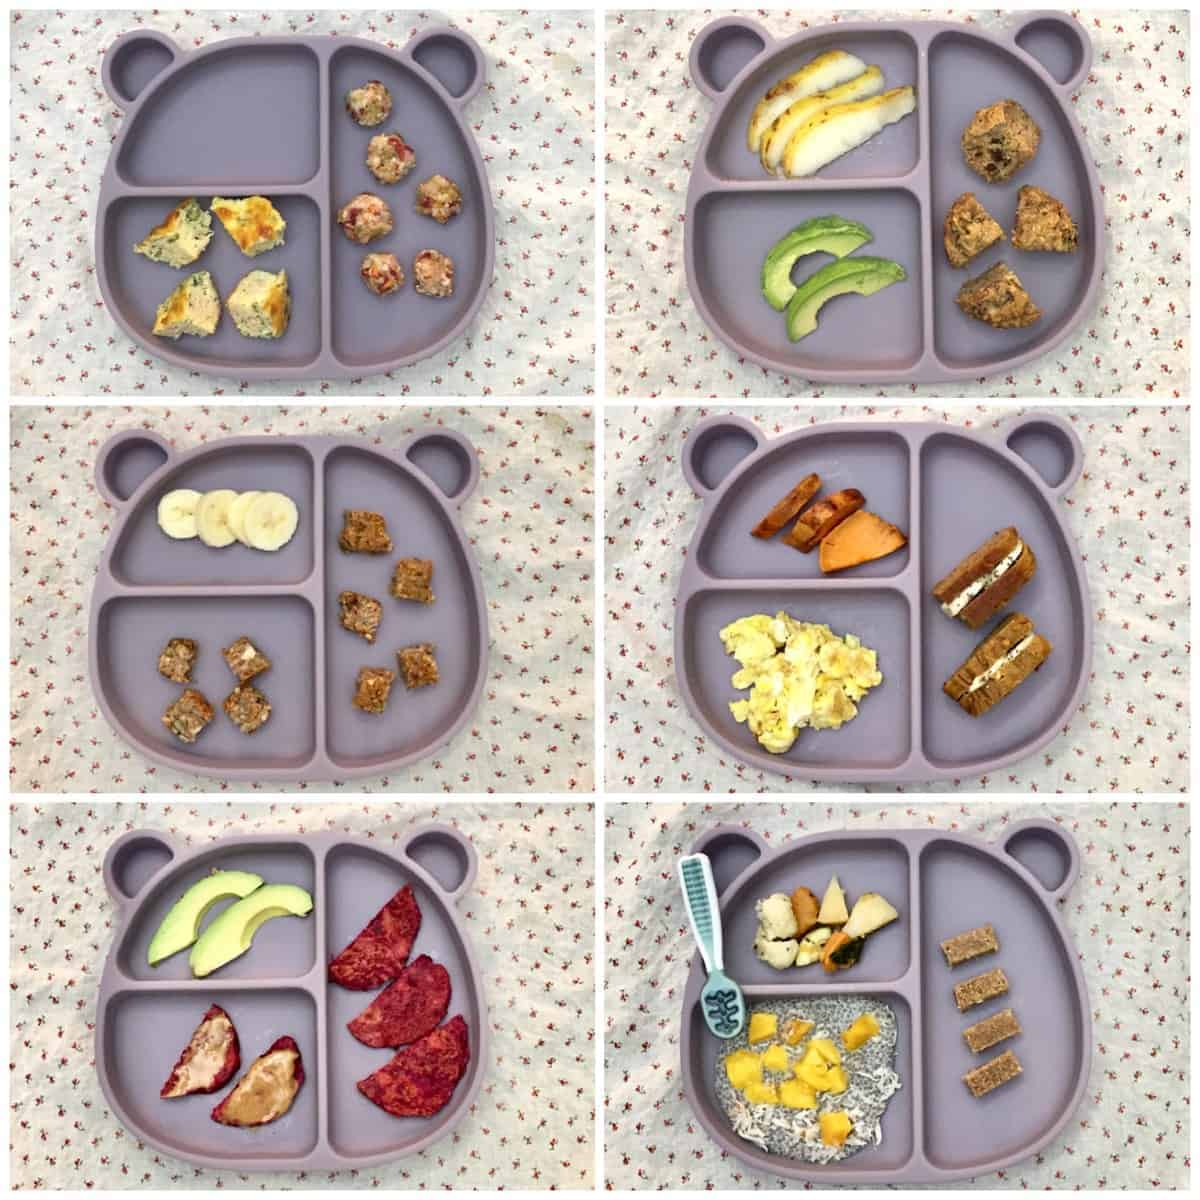 six examples of 10 month old baby breakfasts served on a blue bear-shaped plate